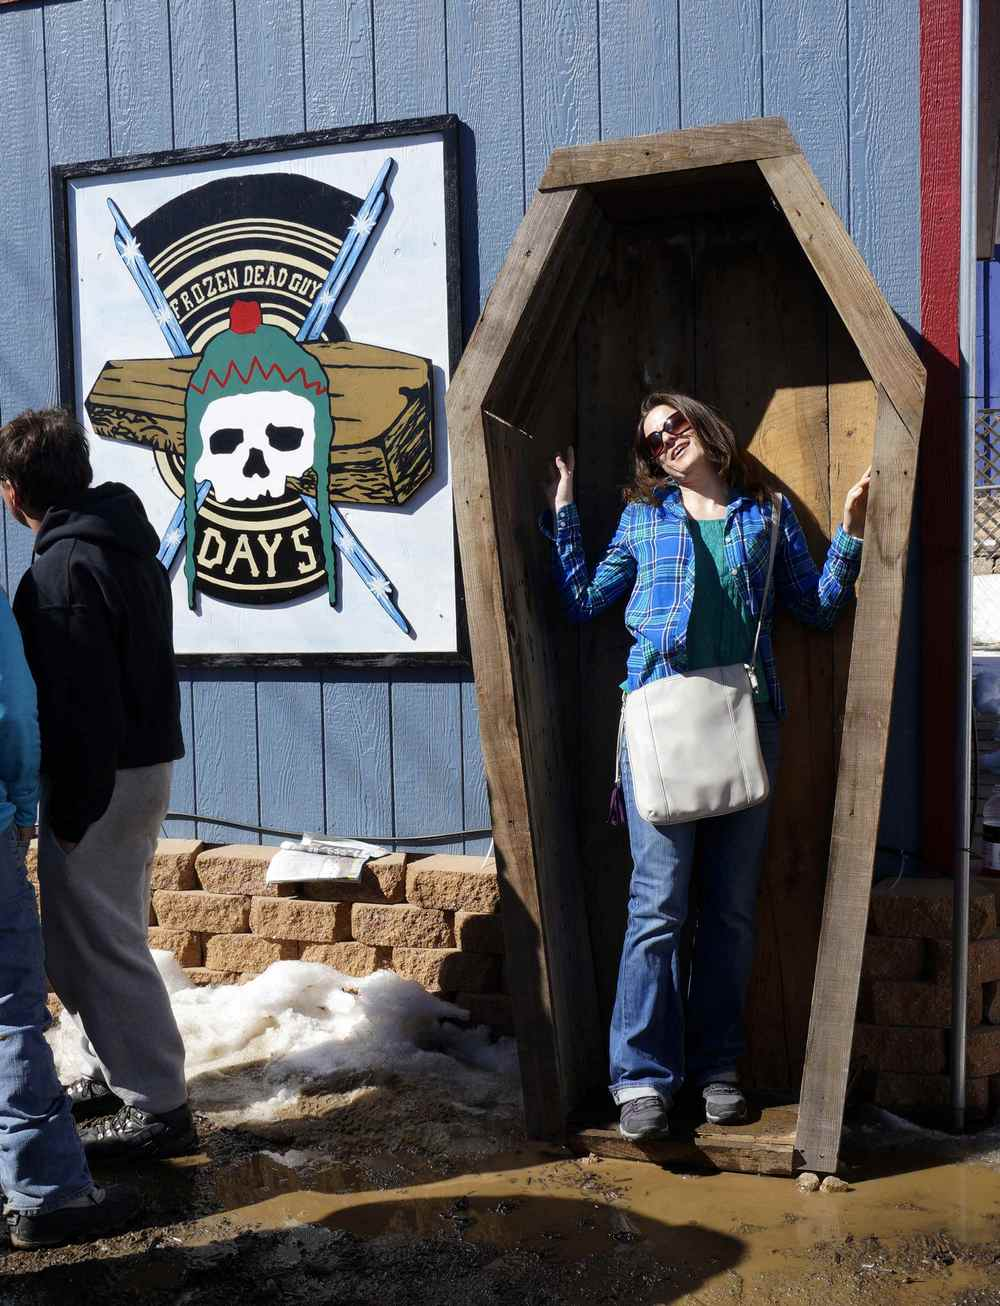 A woman poses for photo in coffin-shaped box at Frozen Dead Guy Days in Nederland